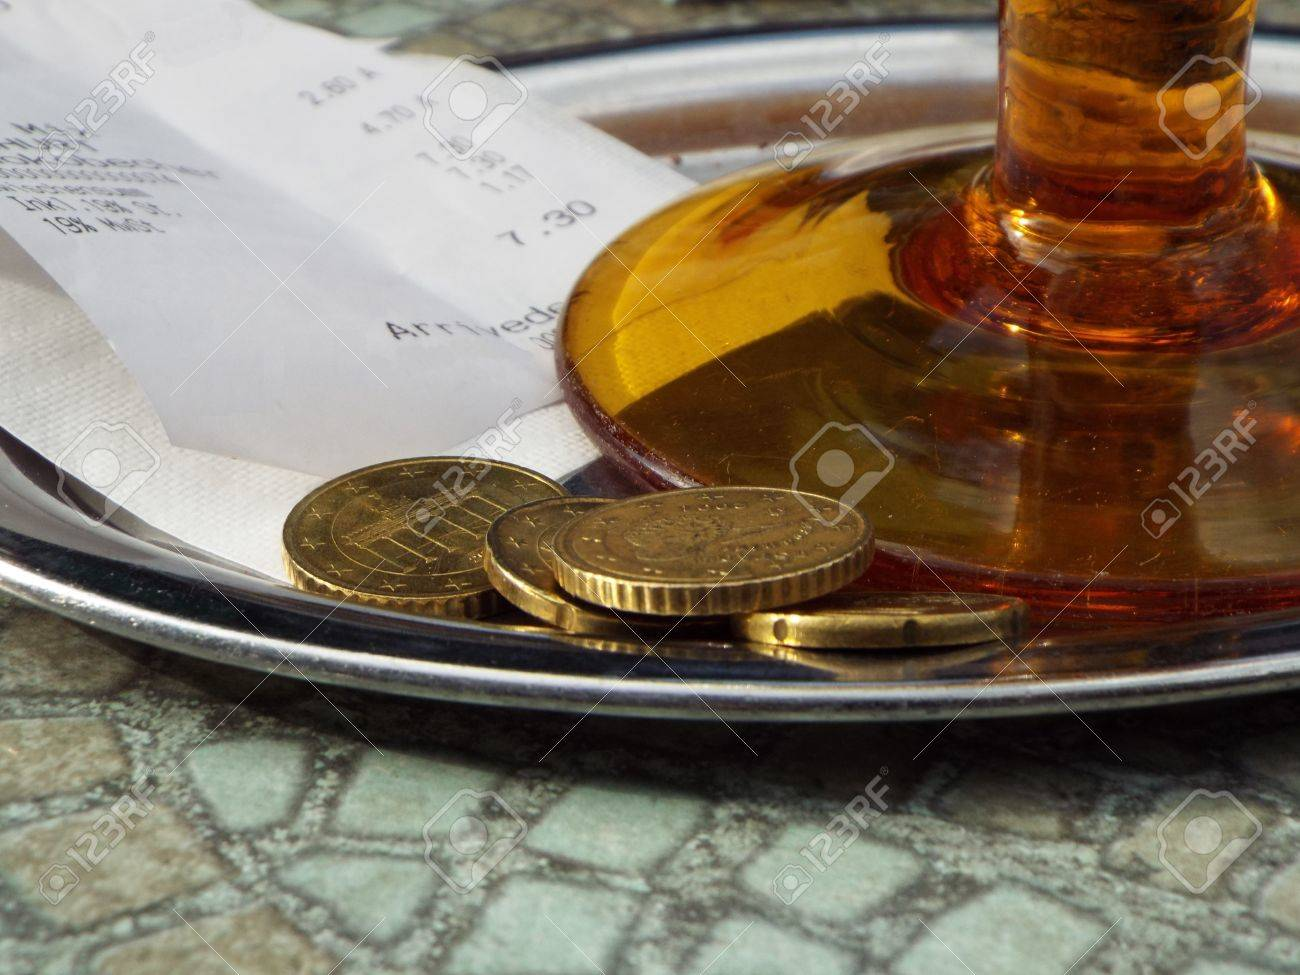 Tipping on a tray located under a brown glass a receipt alongwith loose change. - 40872356